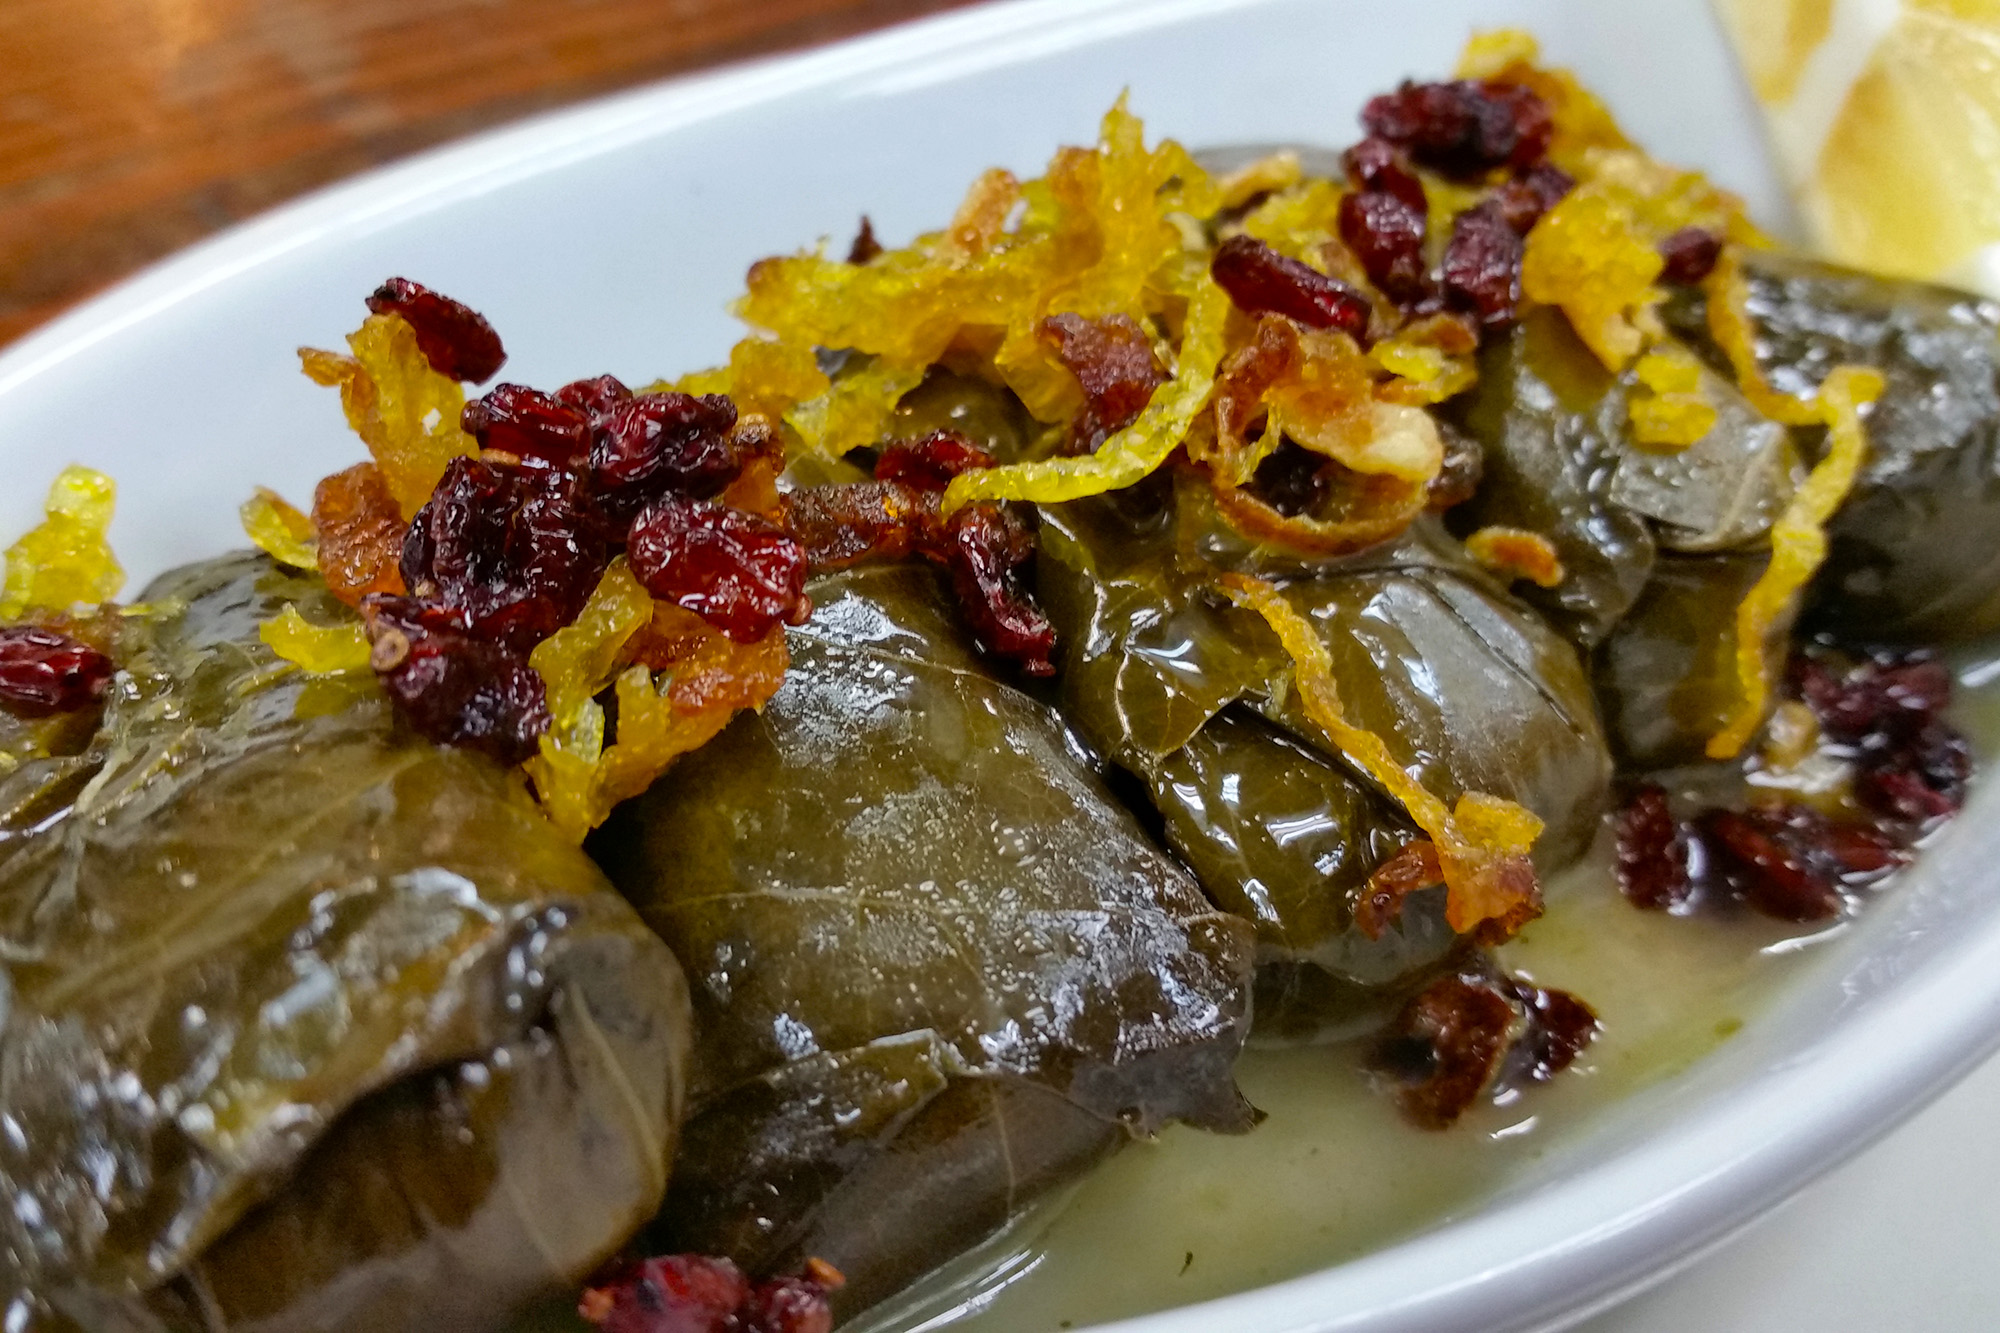 Dolmas ~ stuffed grape leaves topped with fruit at Sahel Persian Restaurant